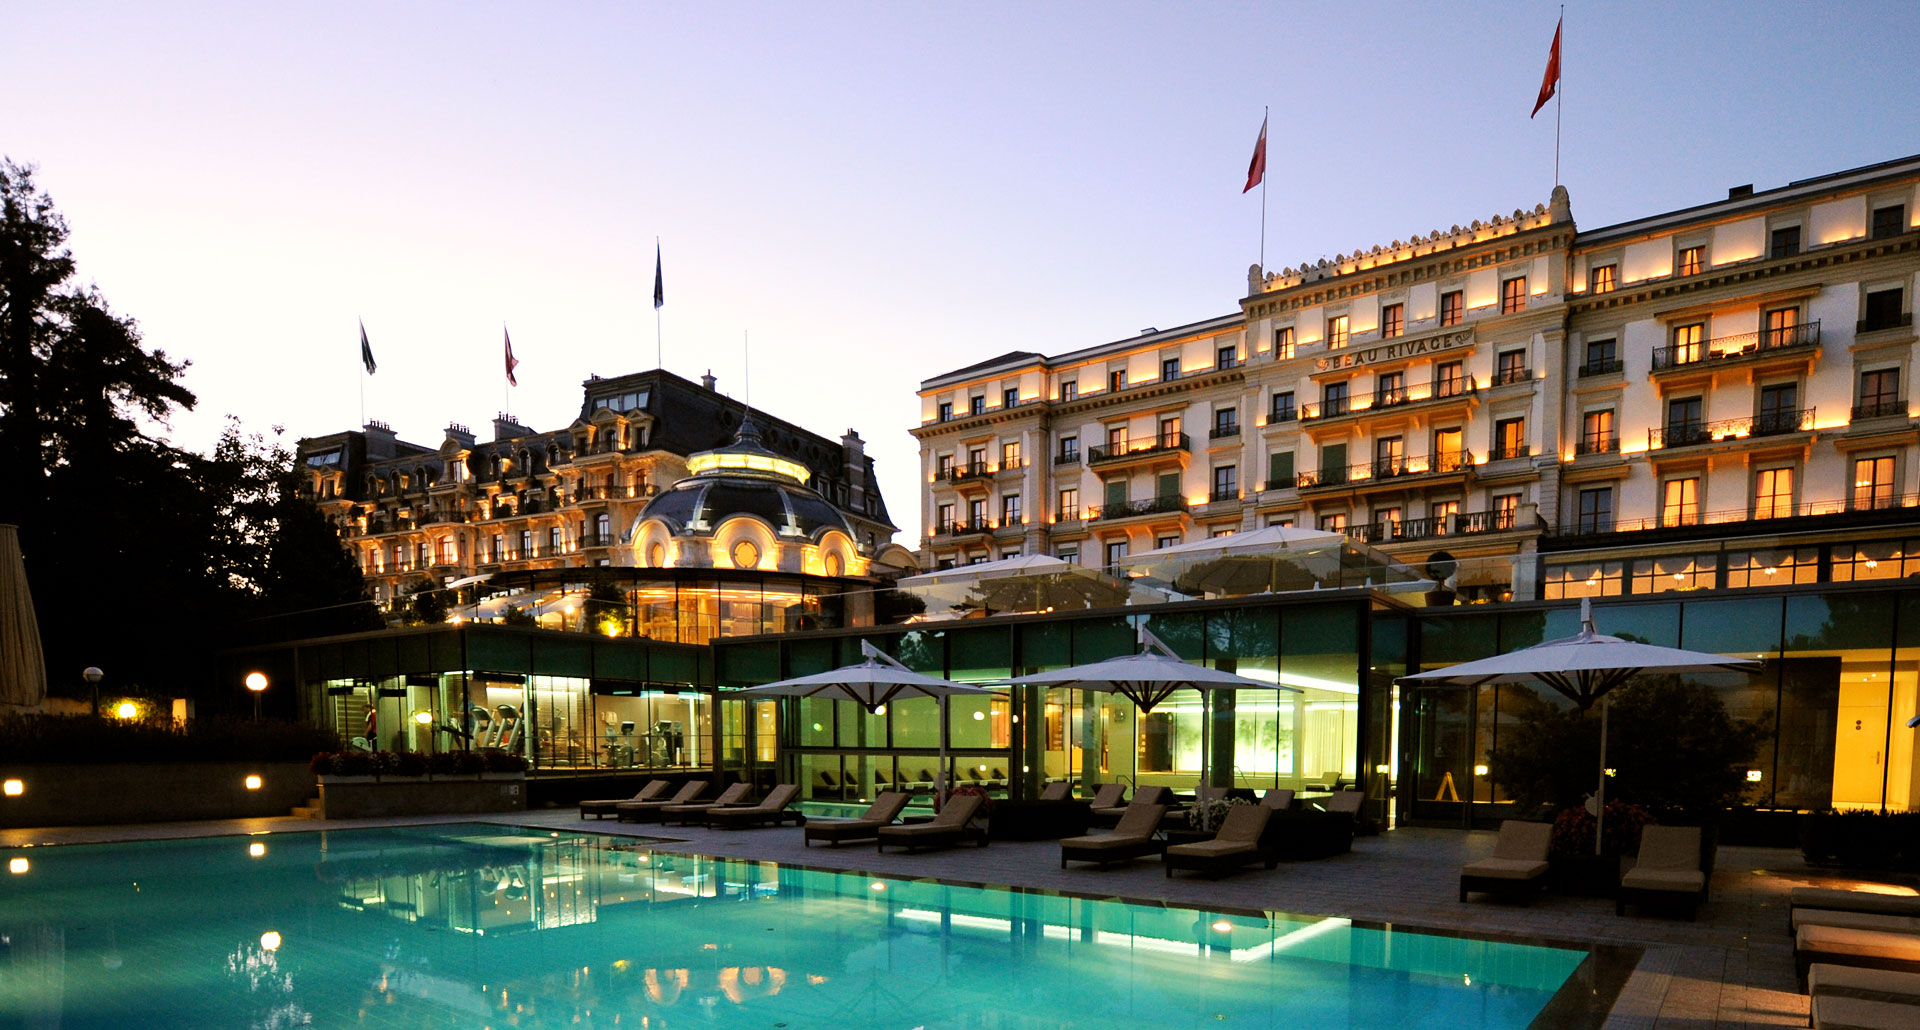 Beau-Rivage Palace - boutique hotel in Lausanne